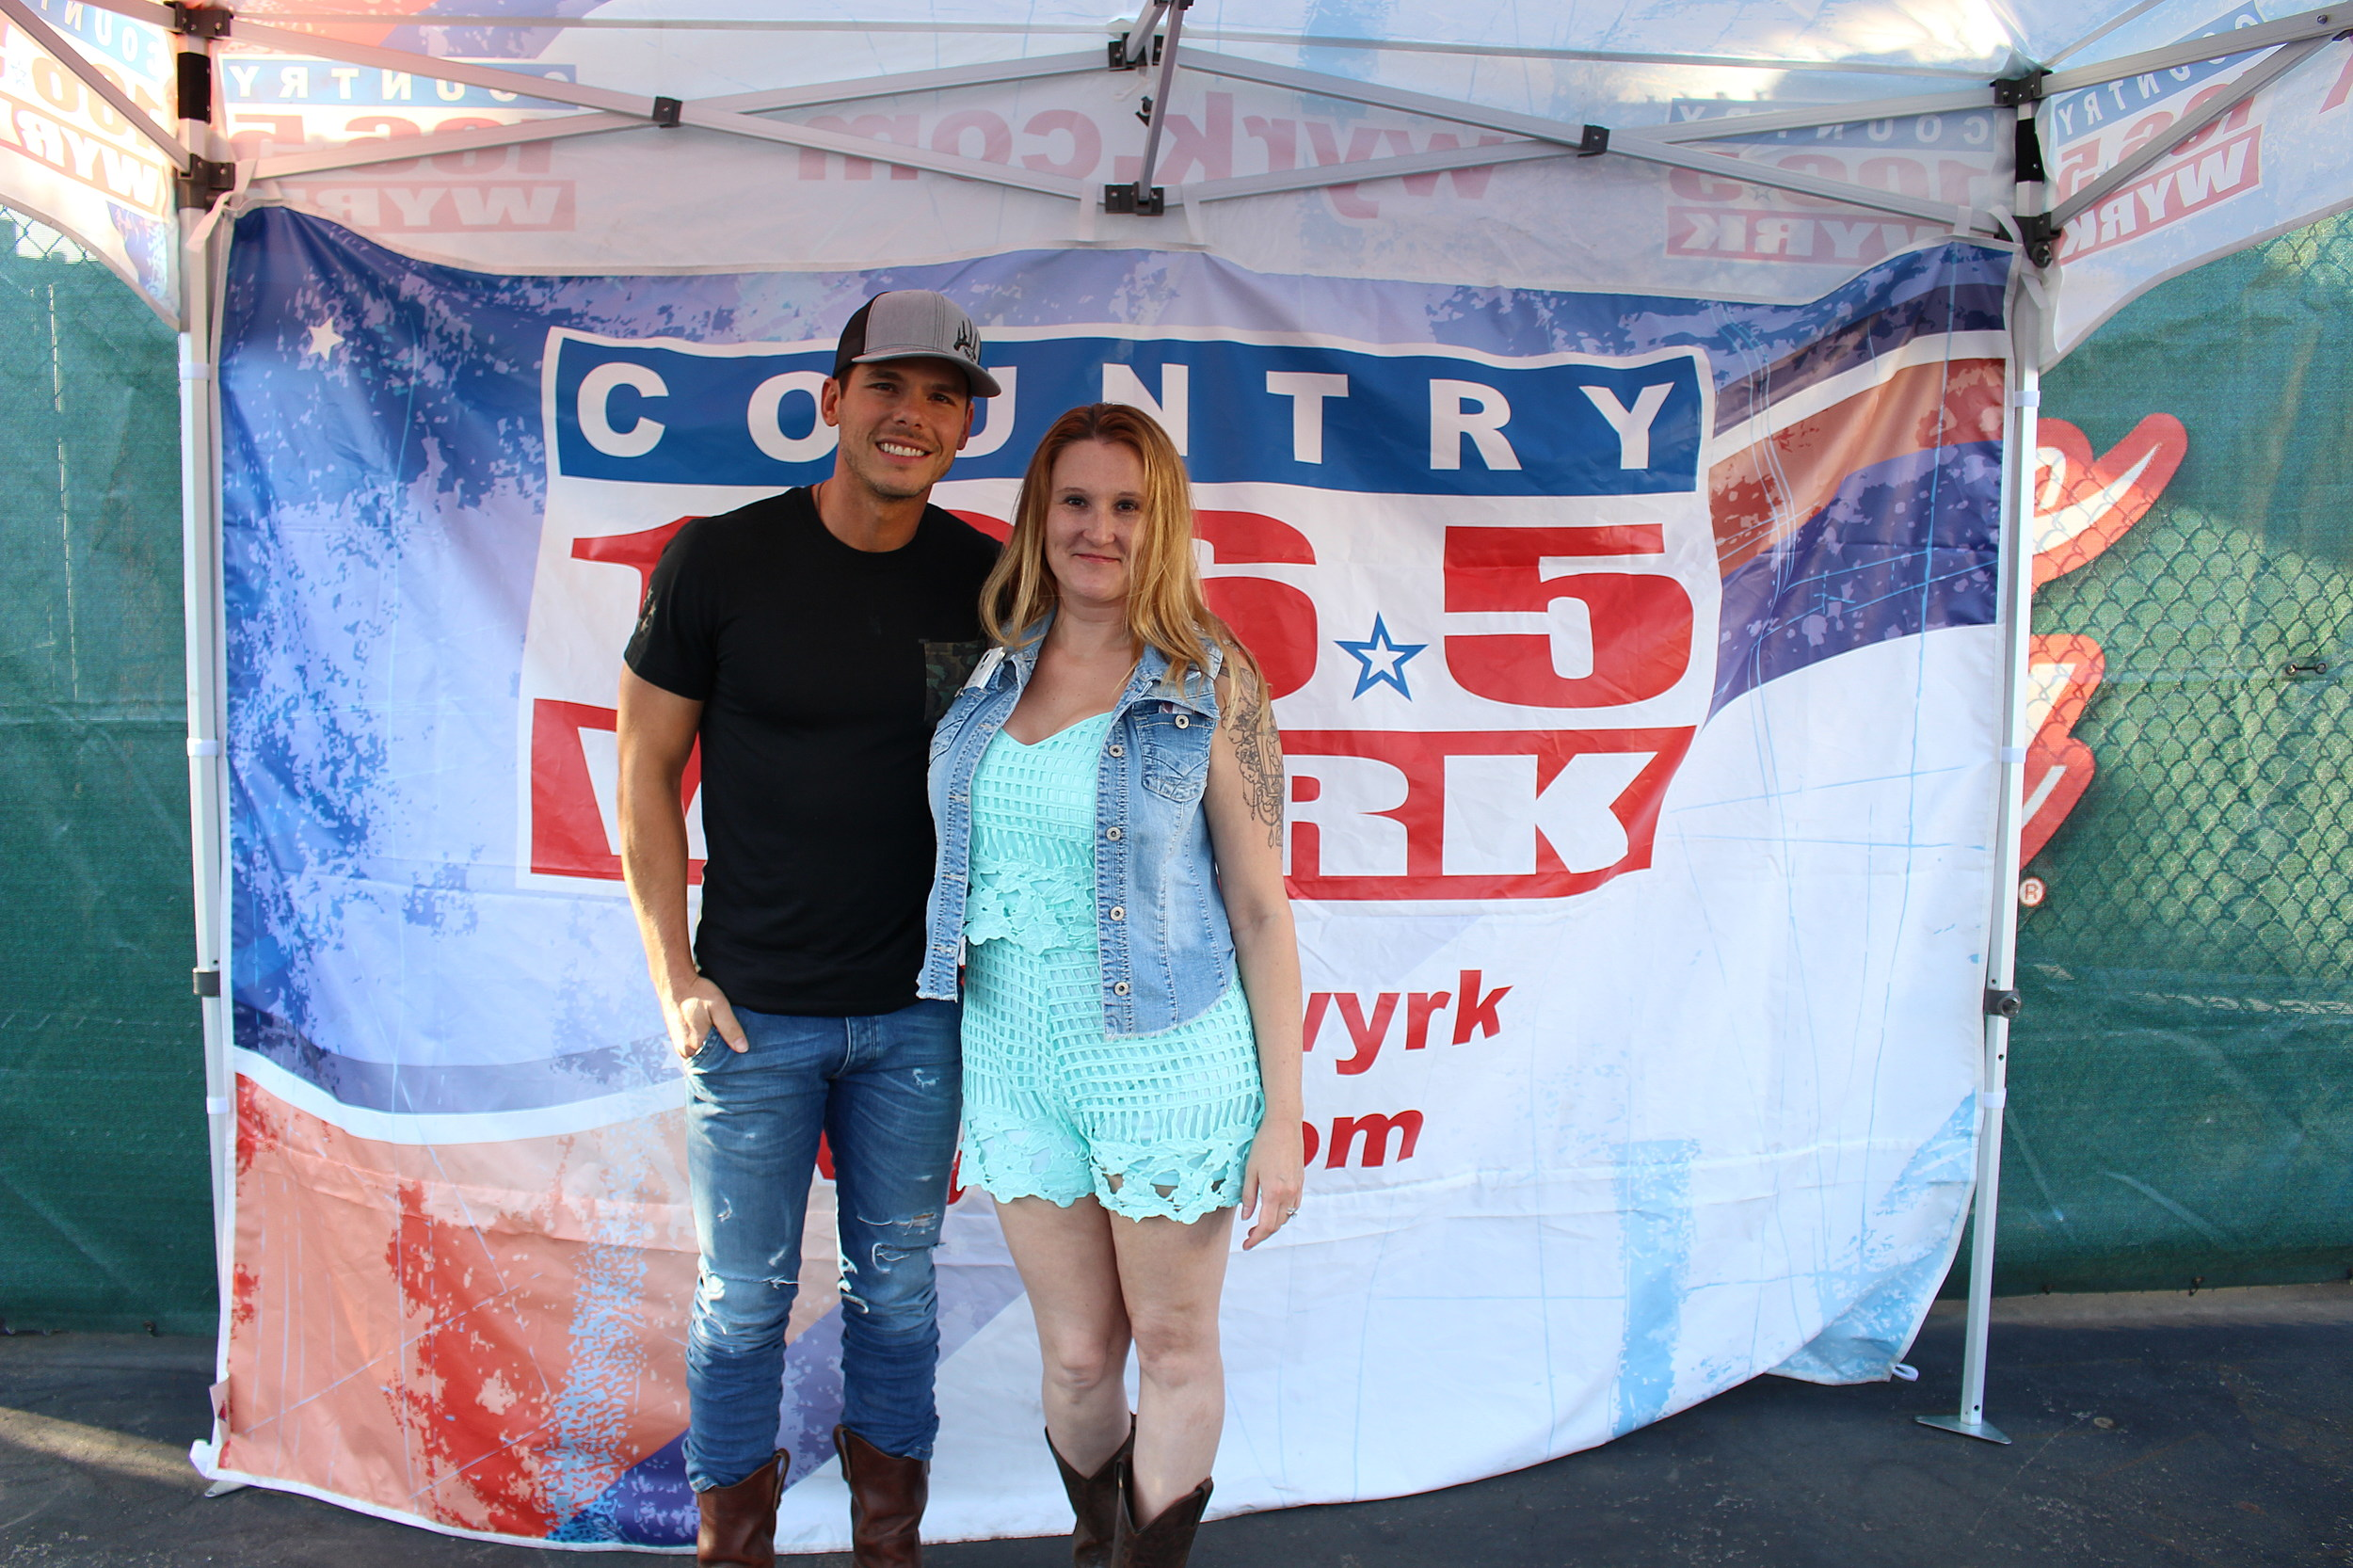 Granger smith taste of country buffalo 2016 meet and greet photos kristyandbryce Images